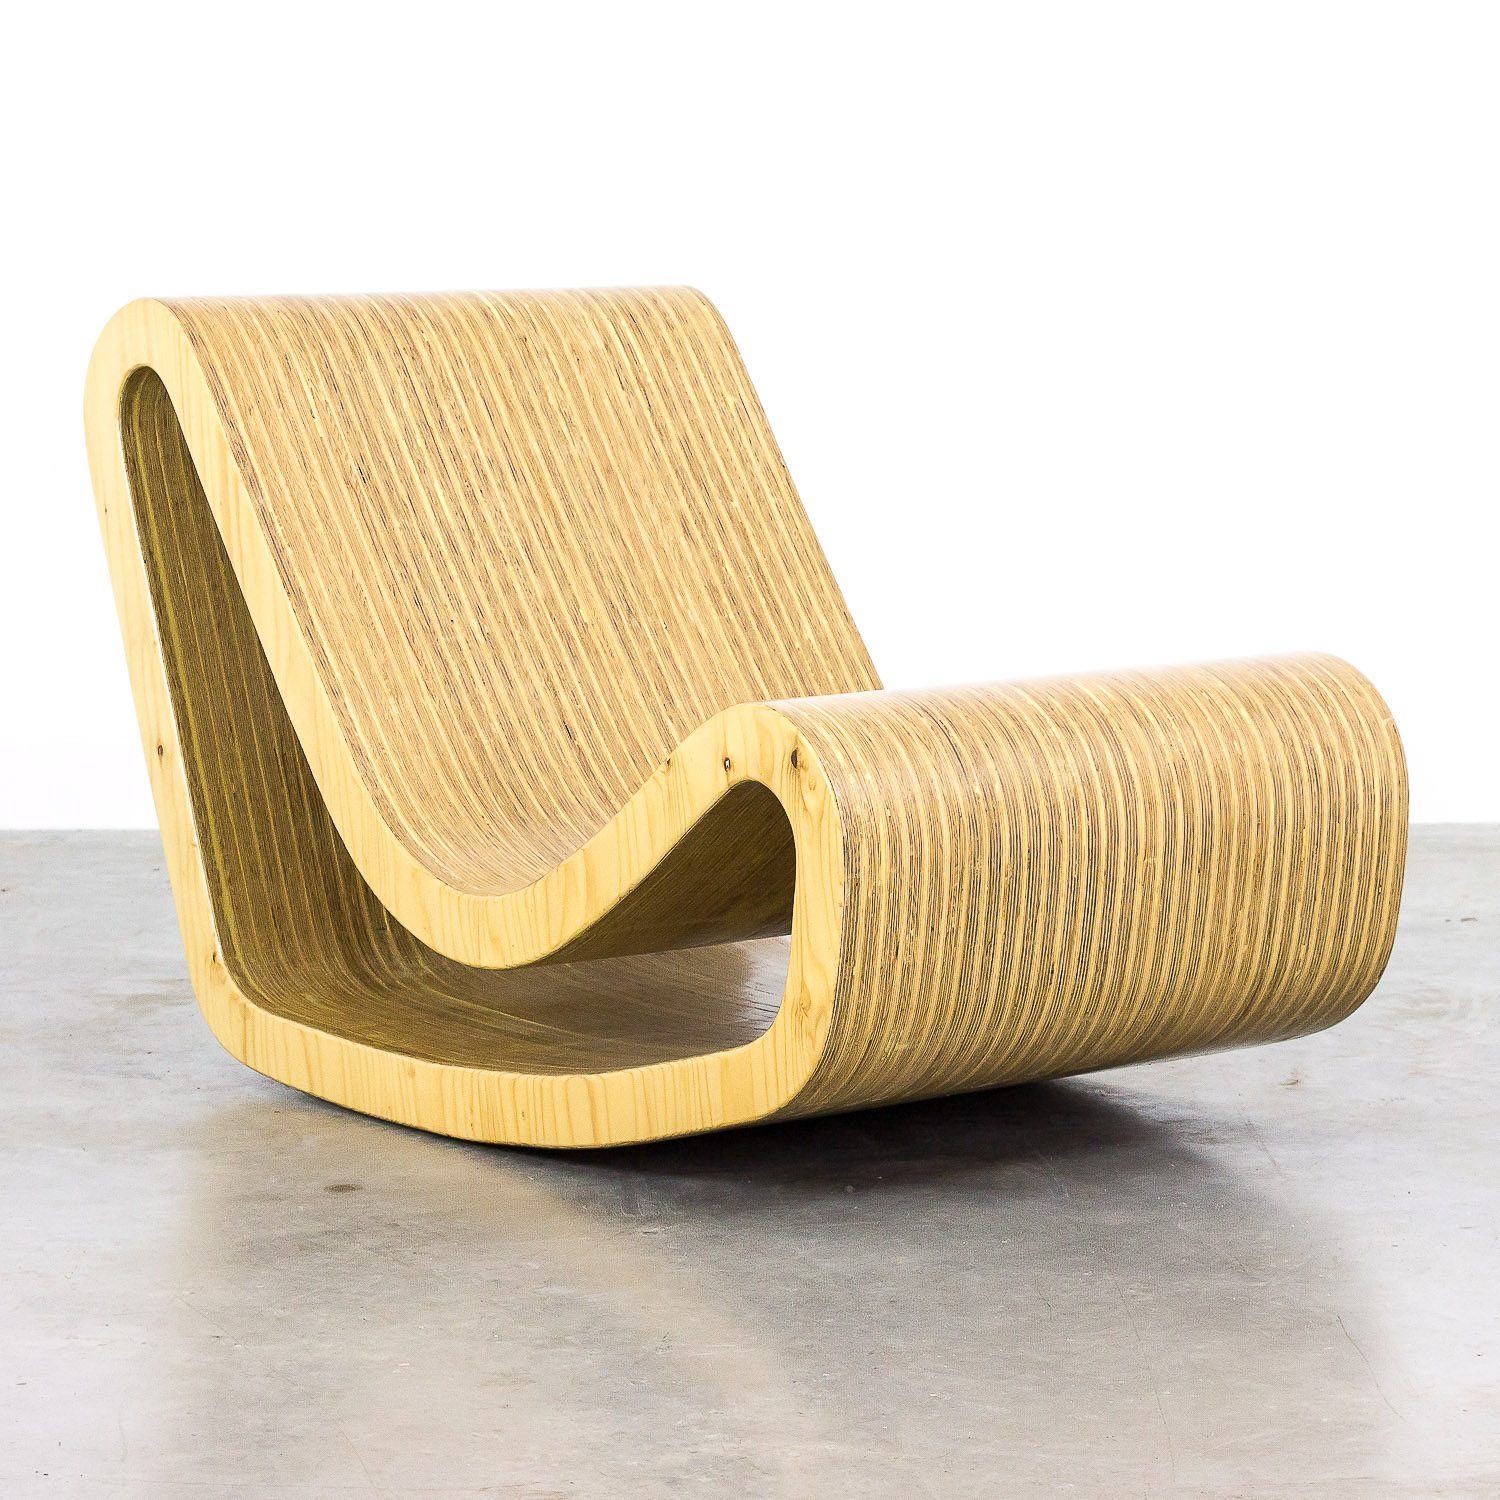 Handgemaakte Willy Guhl loop chair replica